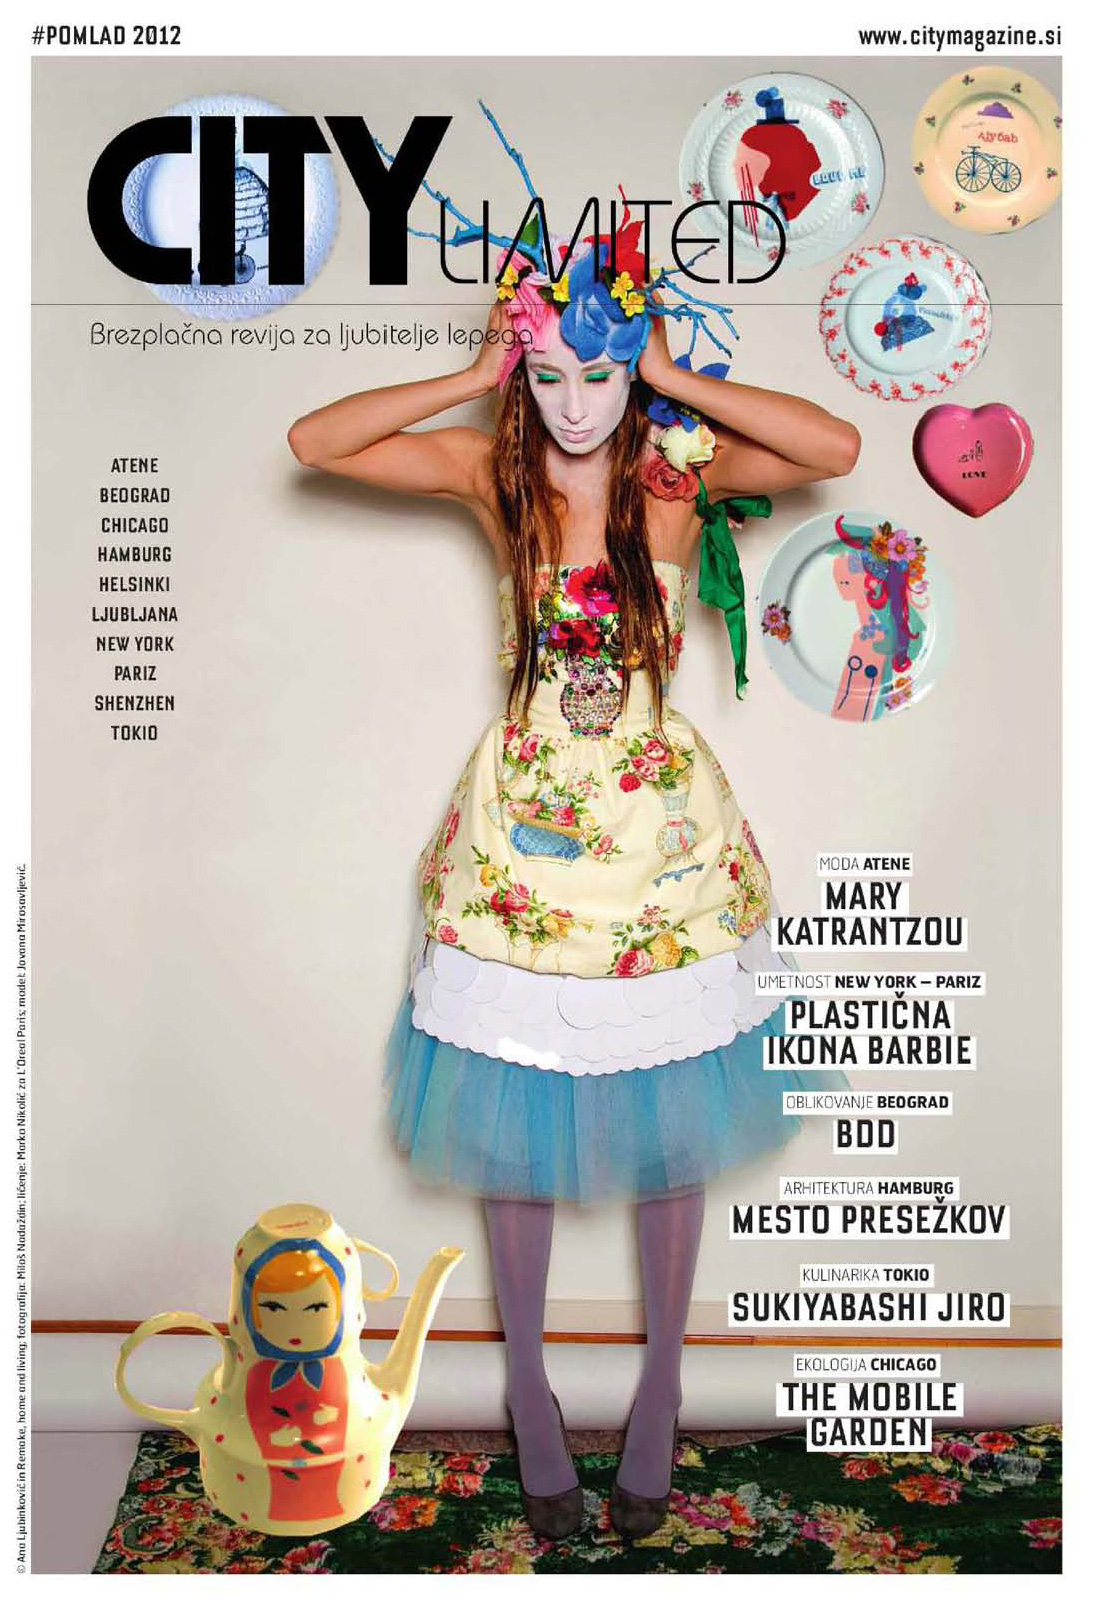 City Magazine - Pomlad 2012